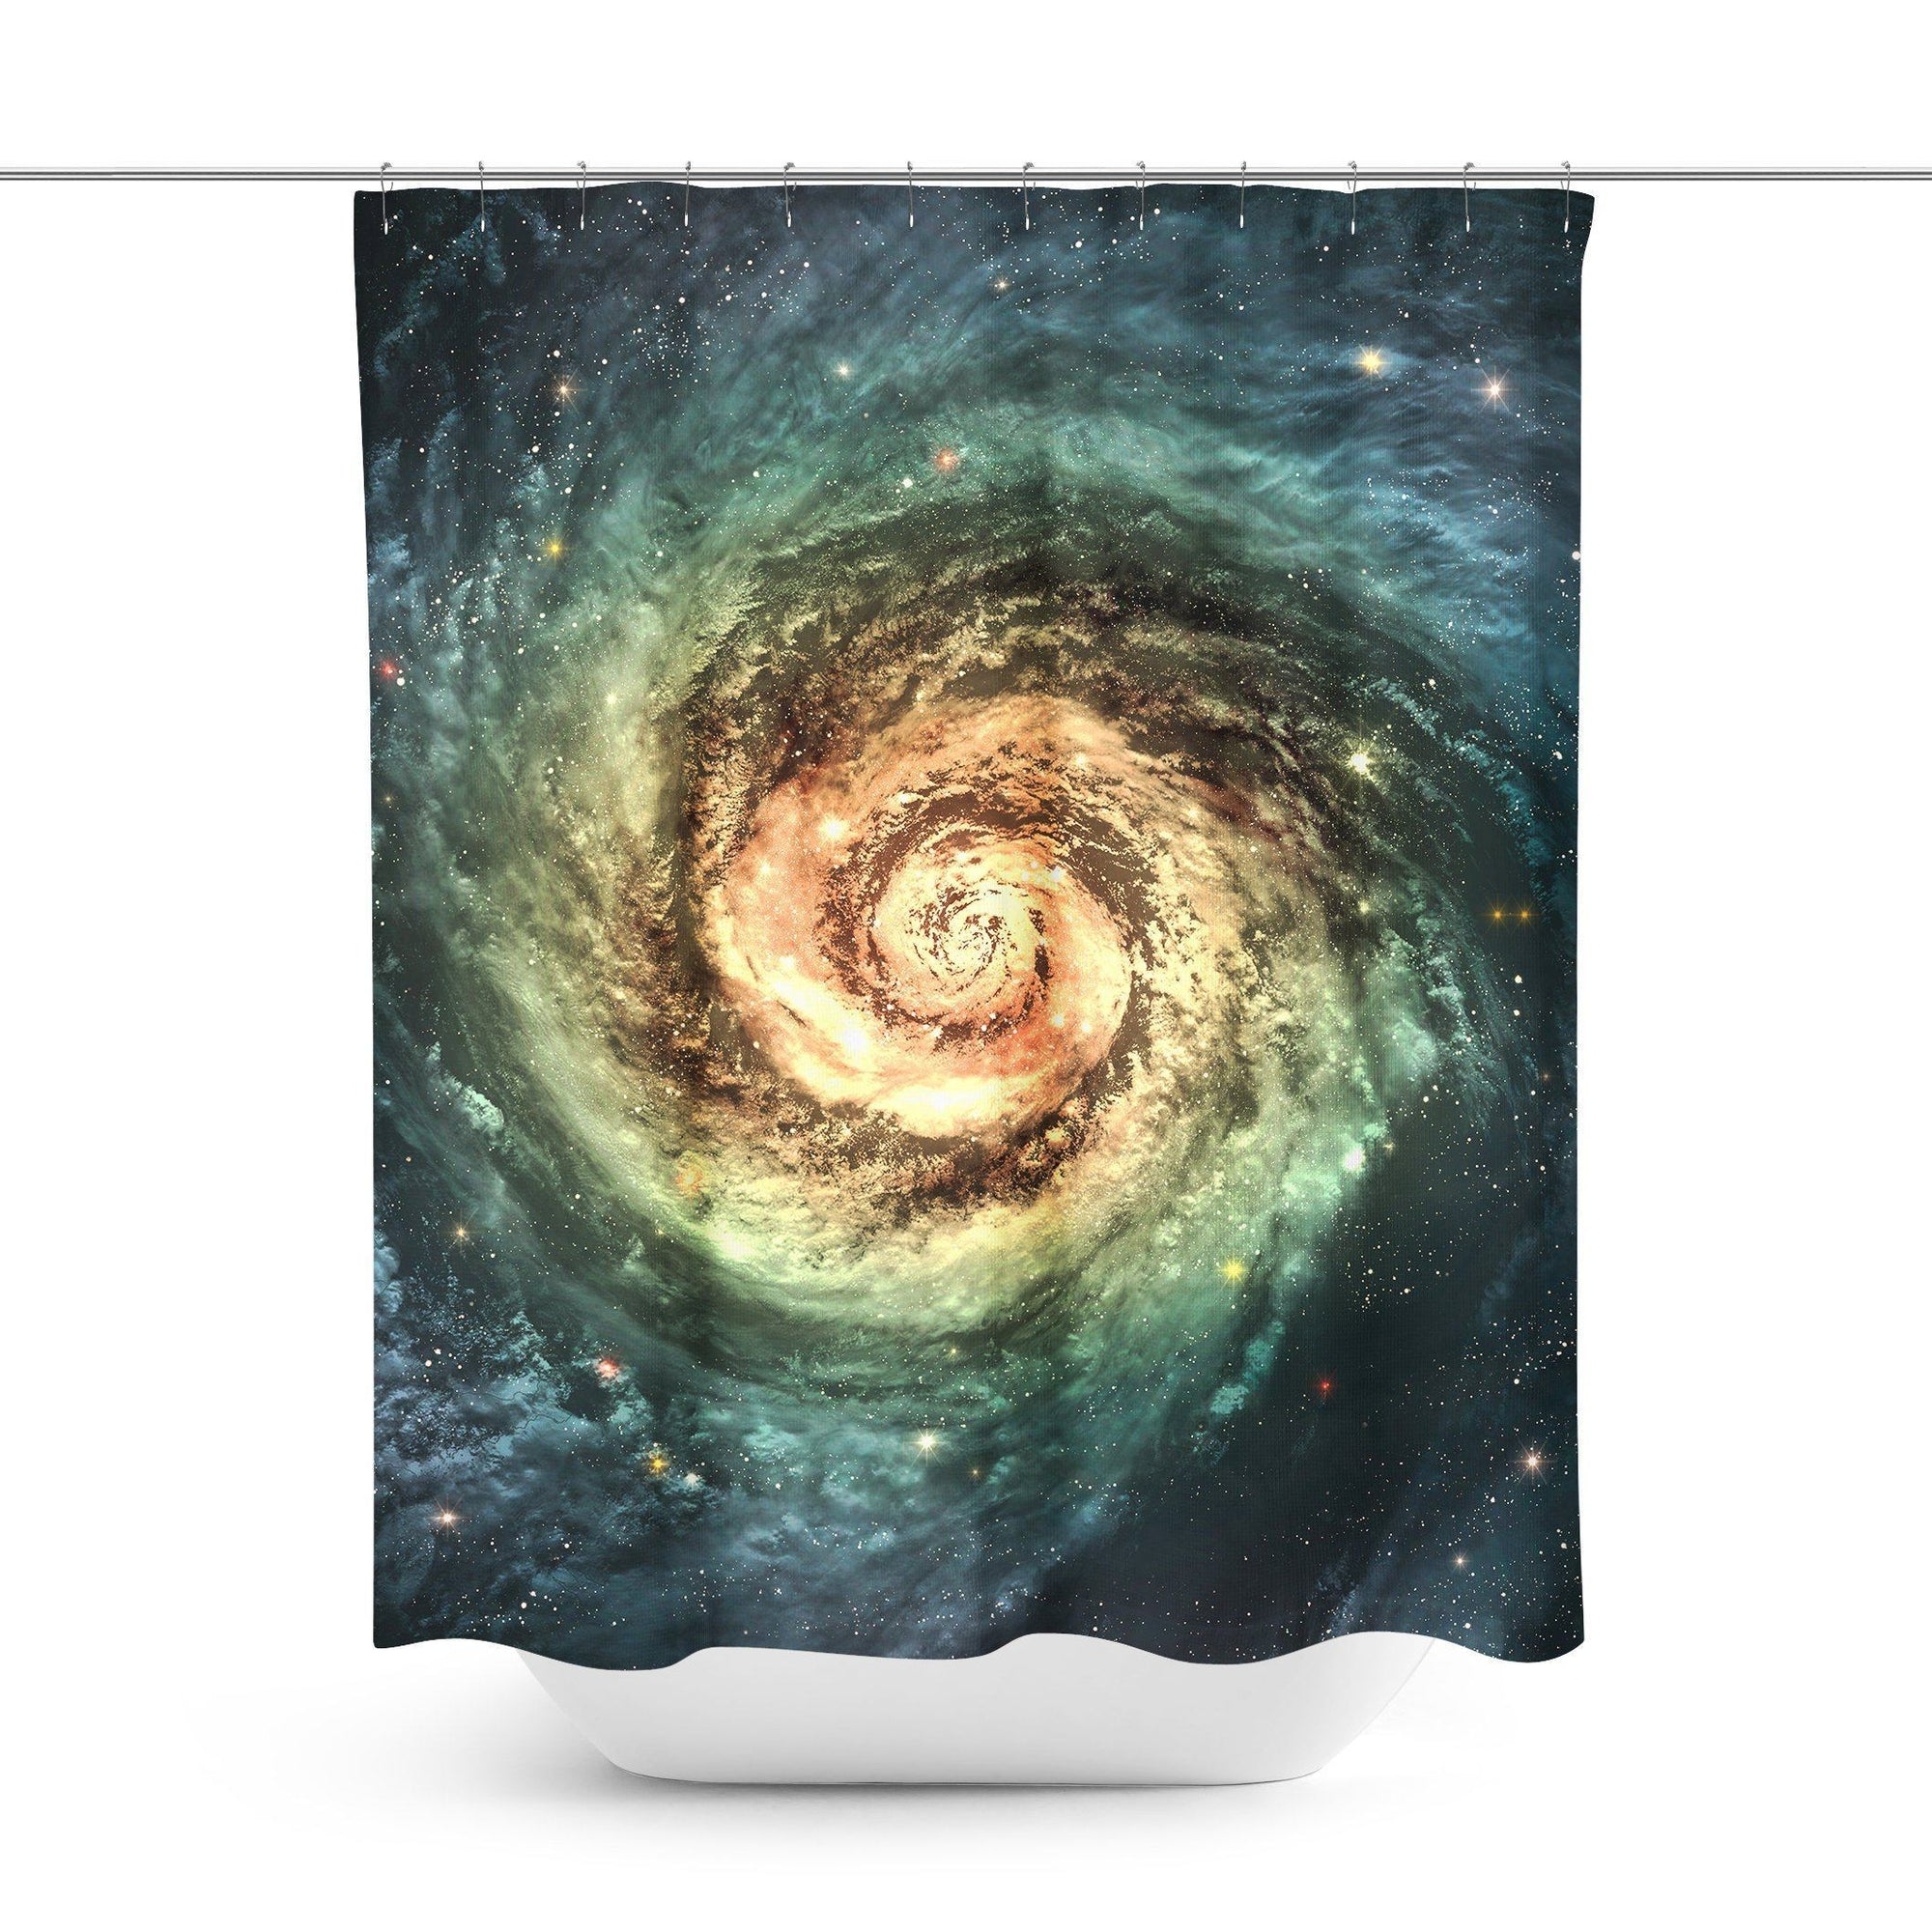 Galaxy Space Shower Curtain - Shower Curtains - W.FRANCIS